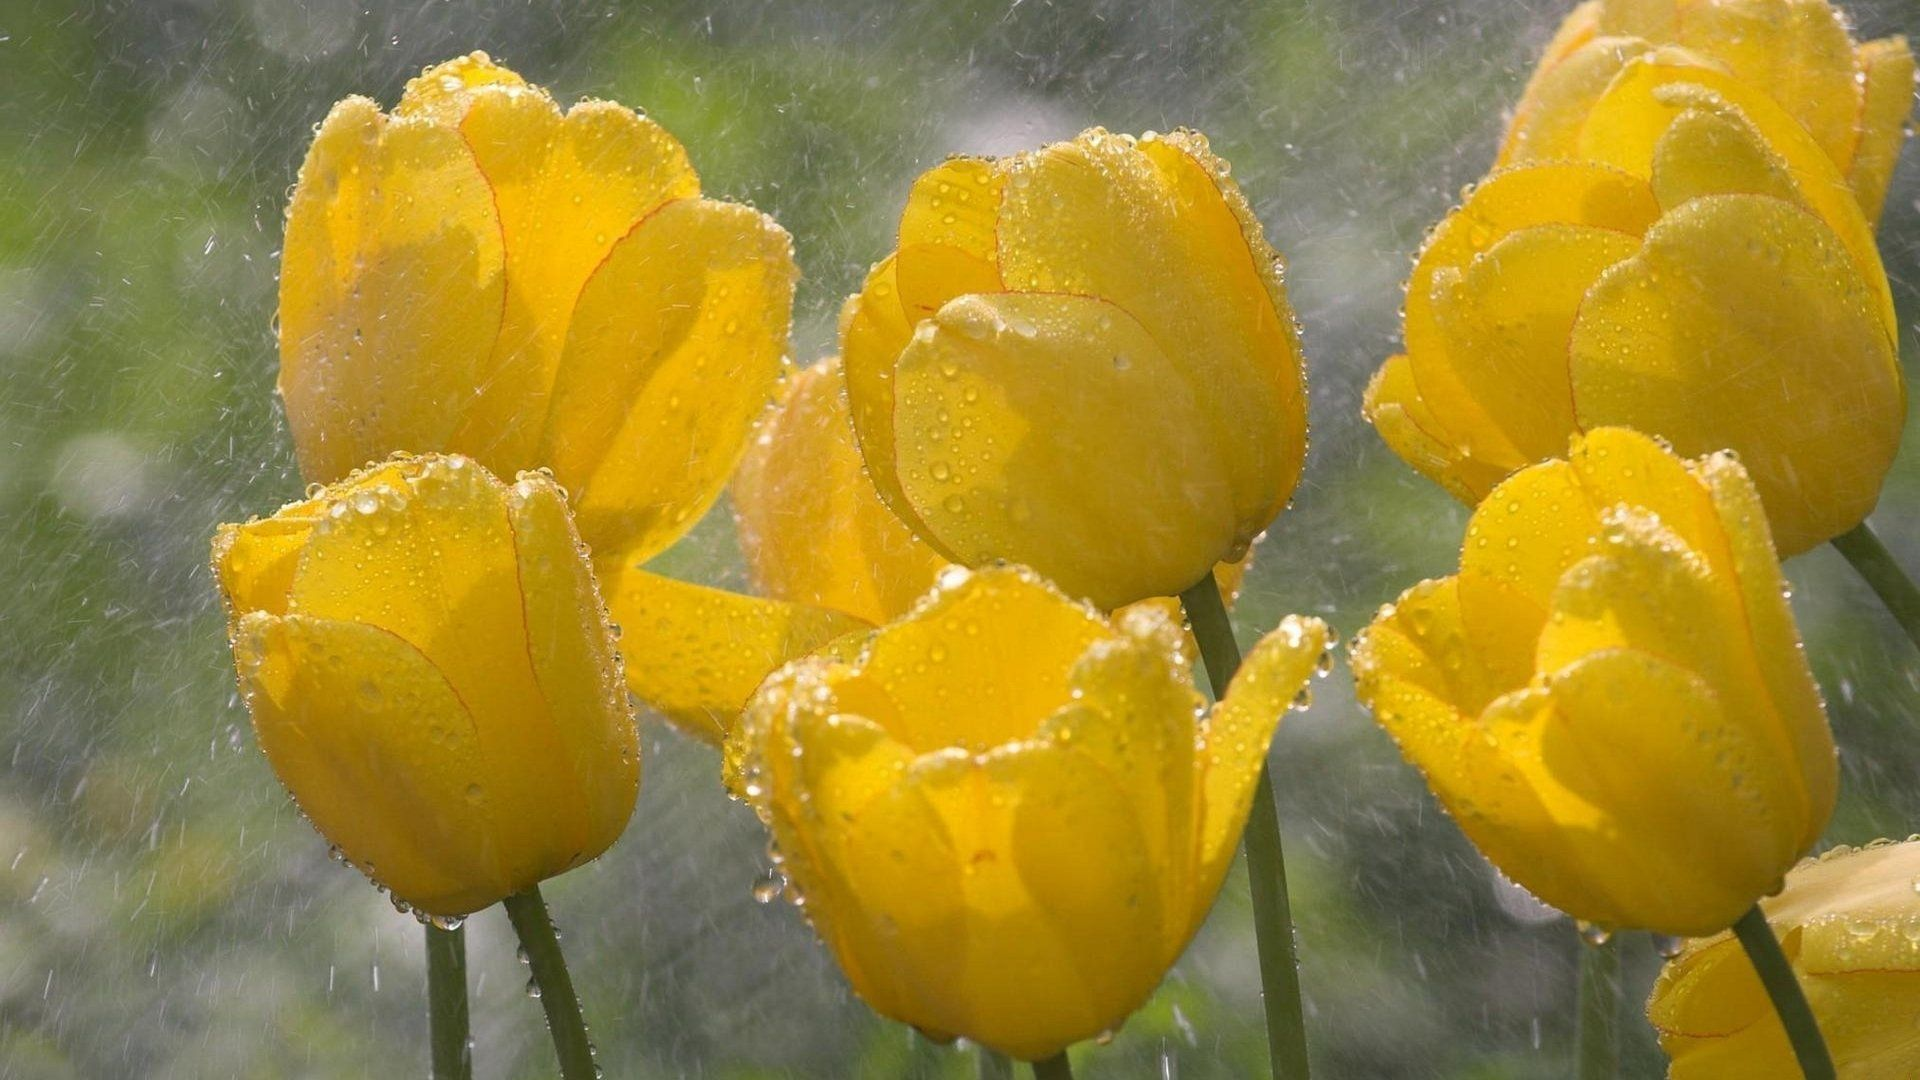 Flowers In The Rain Yellow Flowers In The Rain 5784 Hd And Hq Wallpapers Pink Nature Tulips Yellow Tulips Wallpaper Fantastic yellow flower hd wallpaper